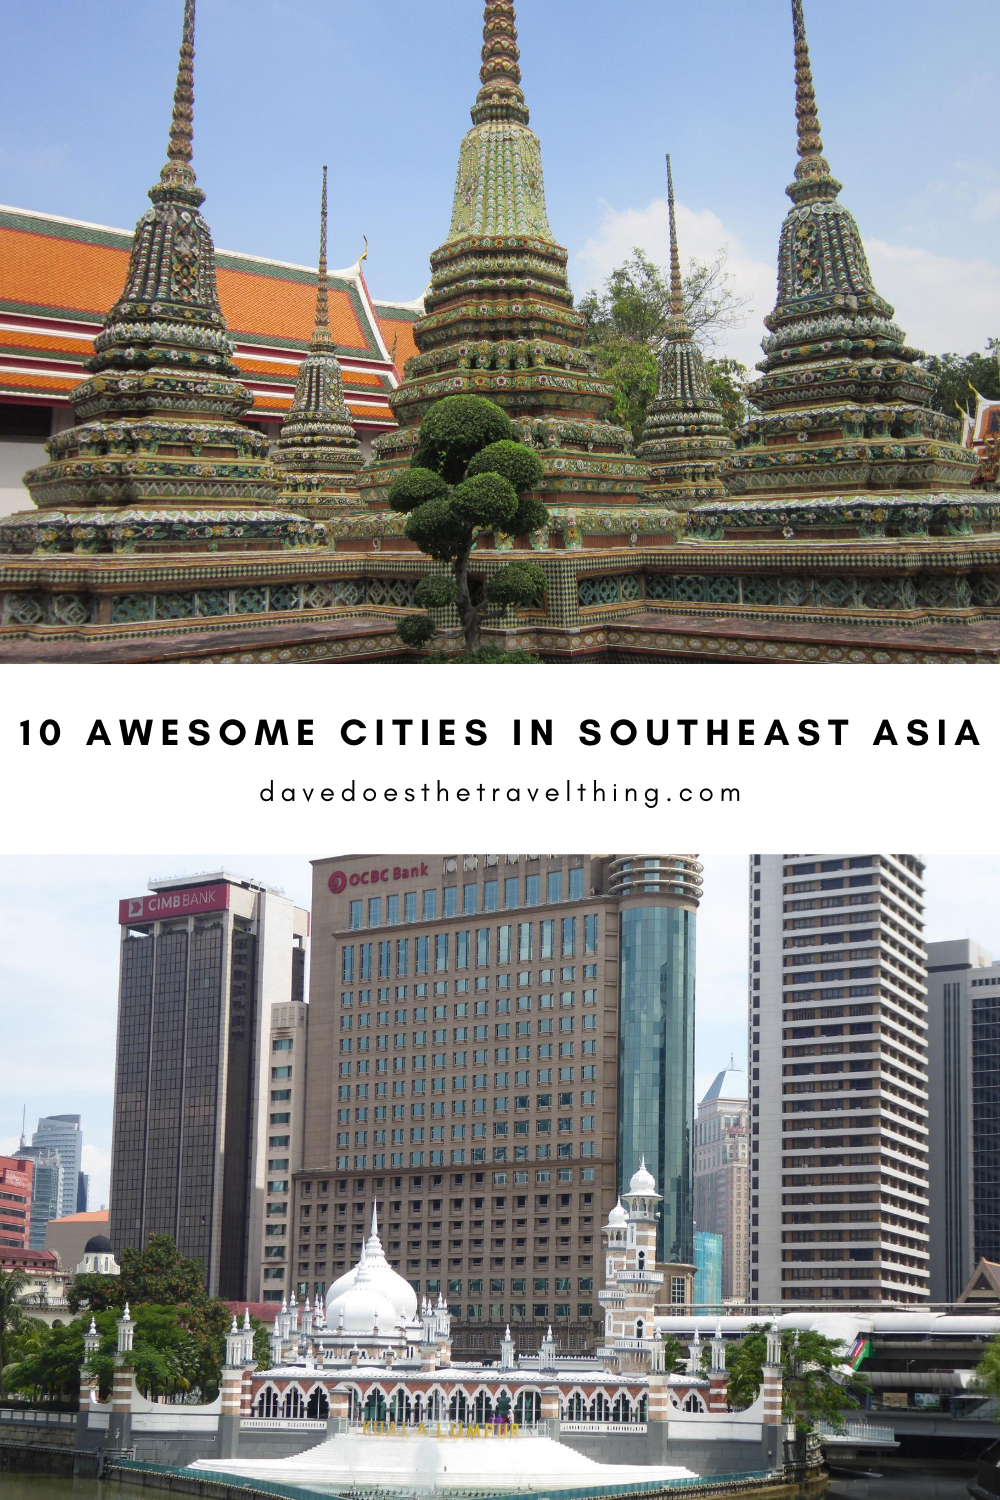 10 Awesome cities in Southeast Asia